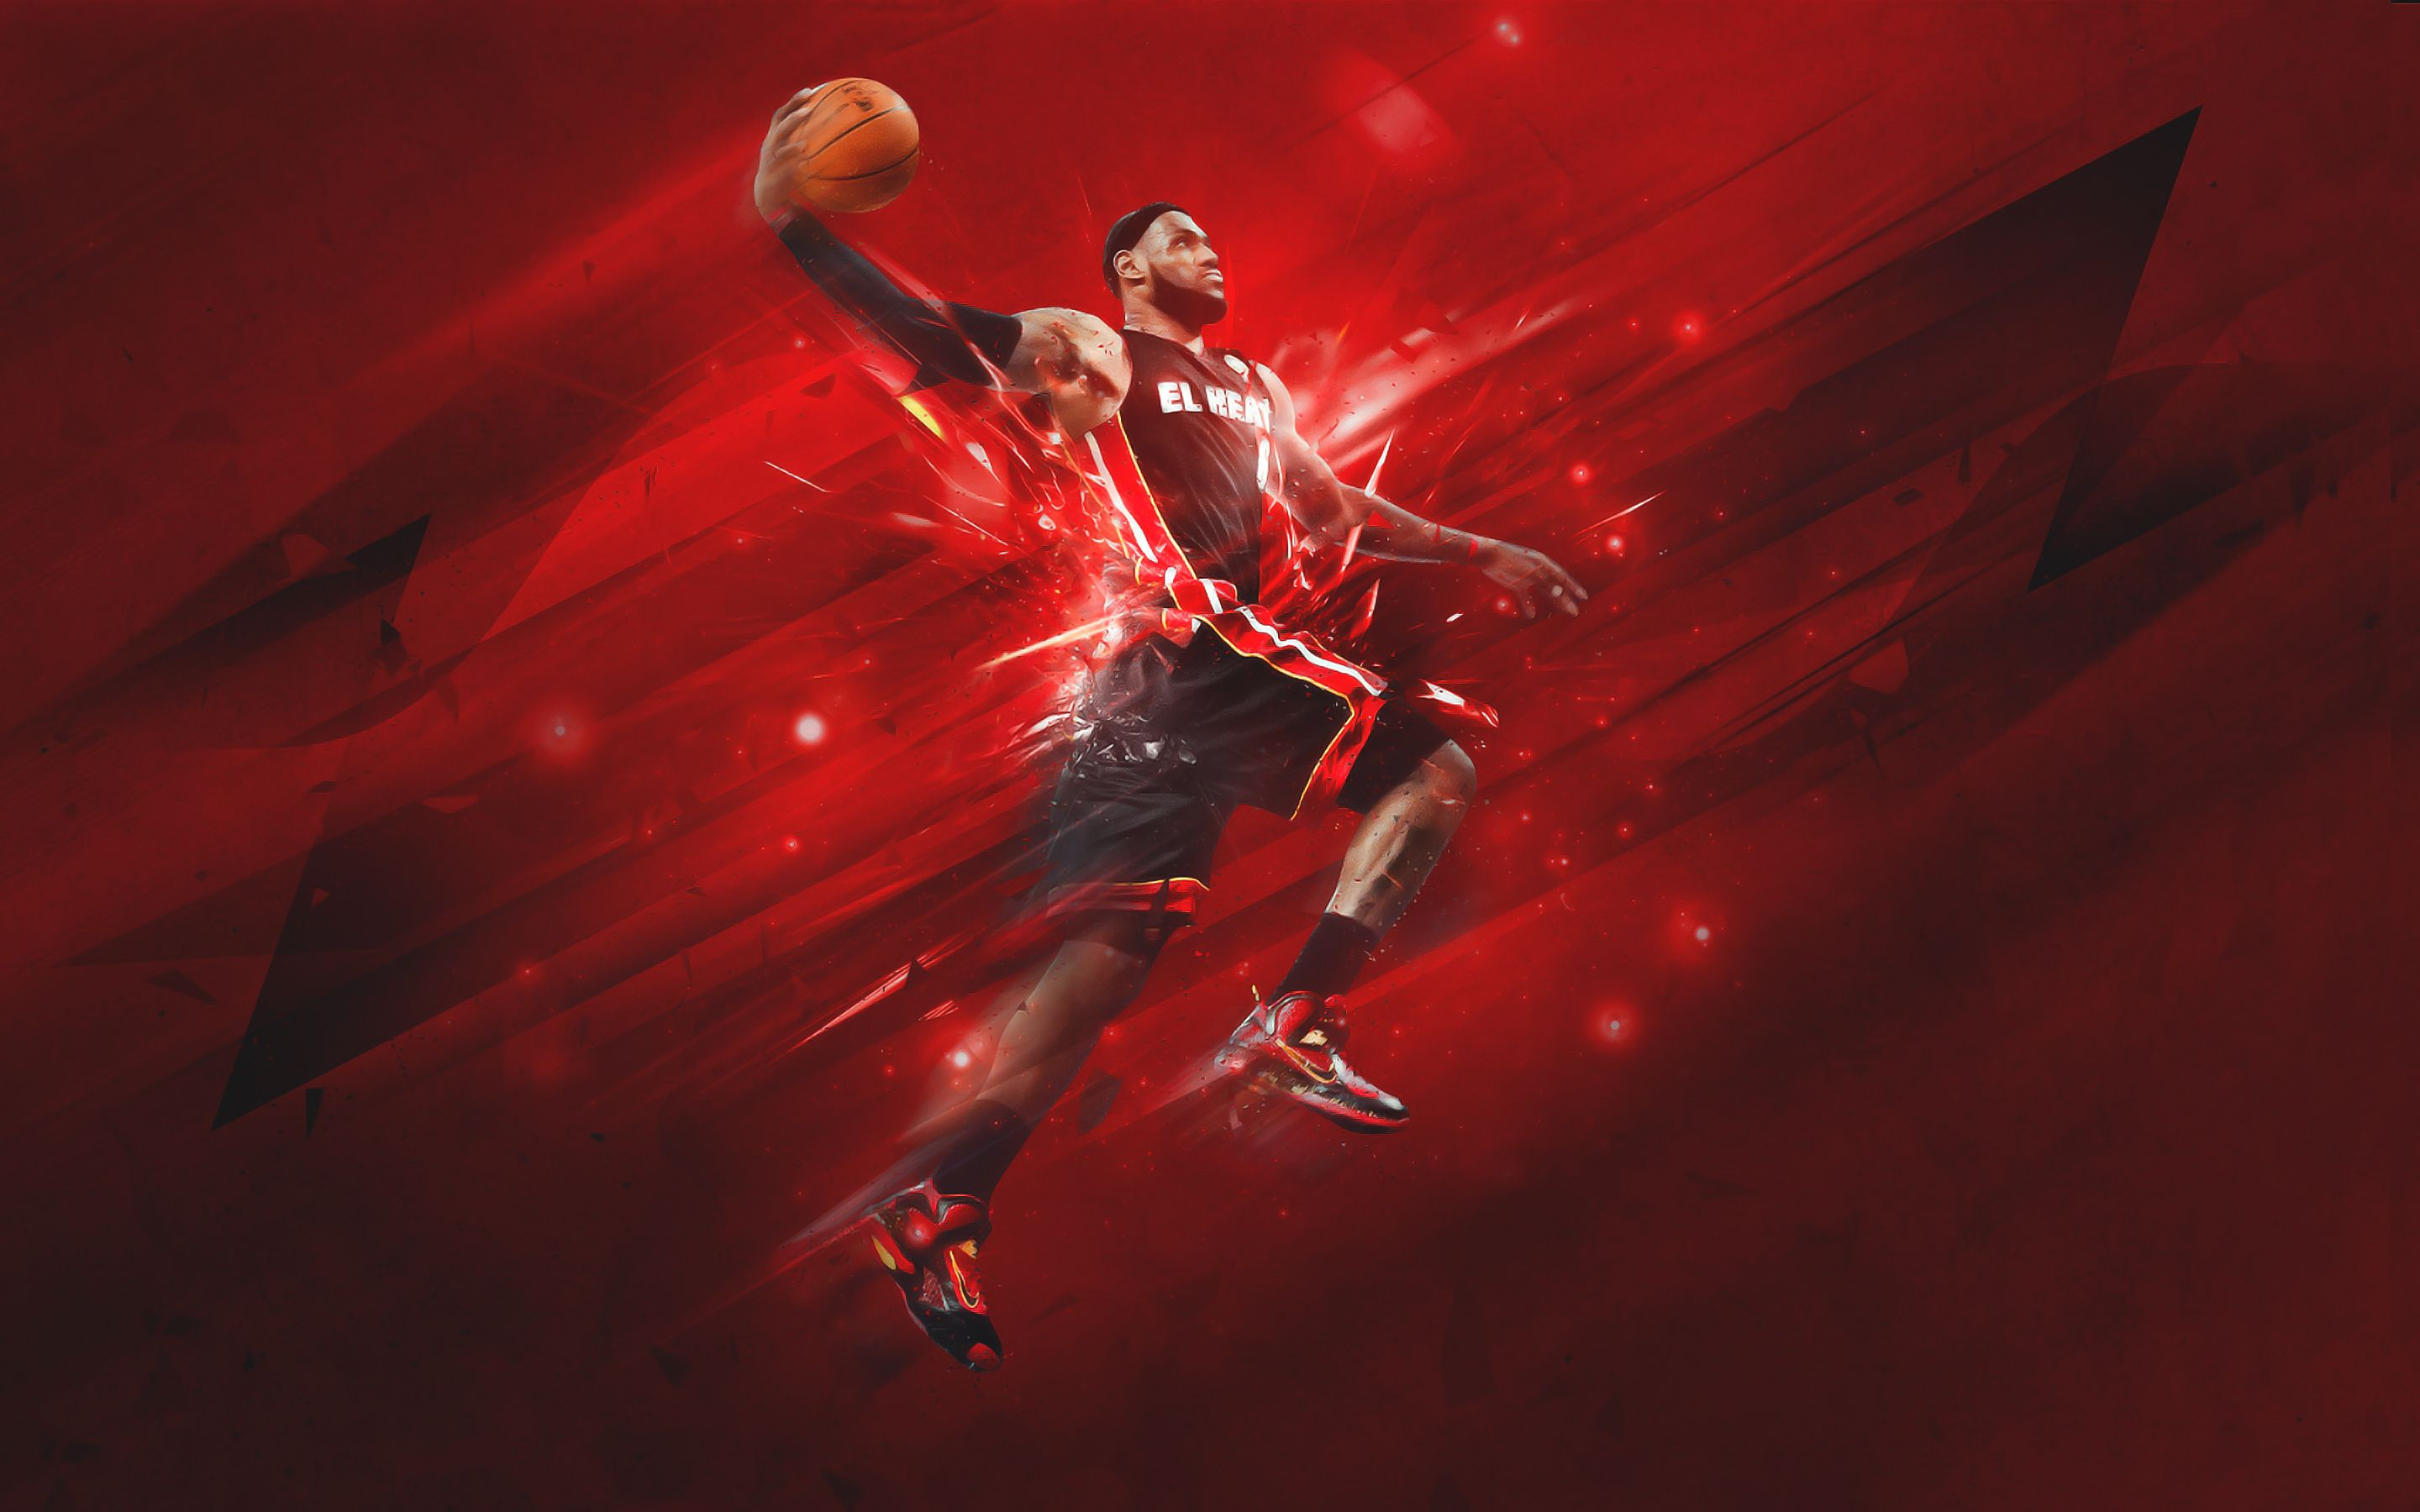 Wallpaper Of Lebron James Miami Heat Background Hd Image